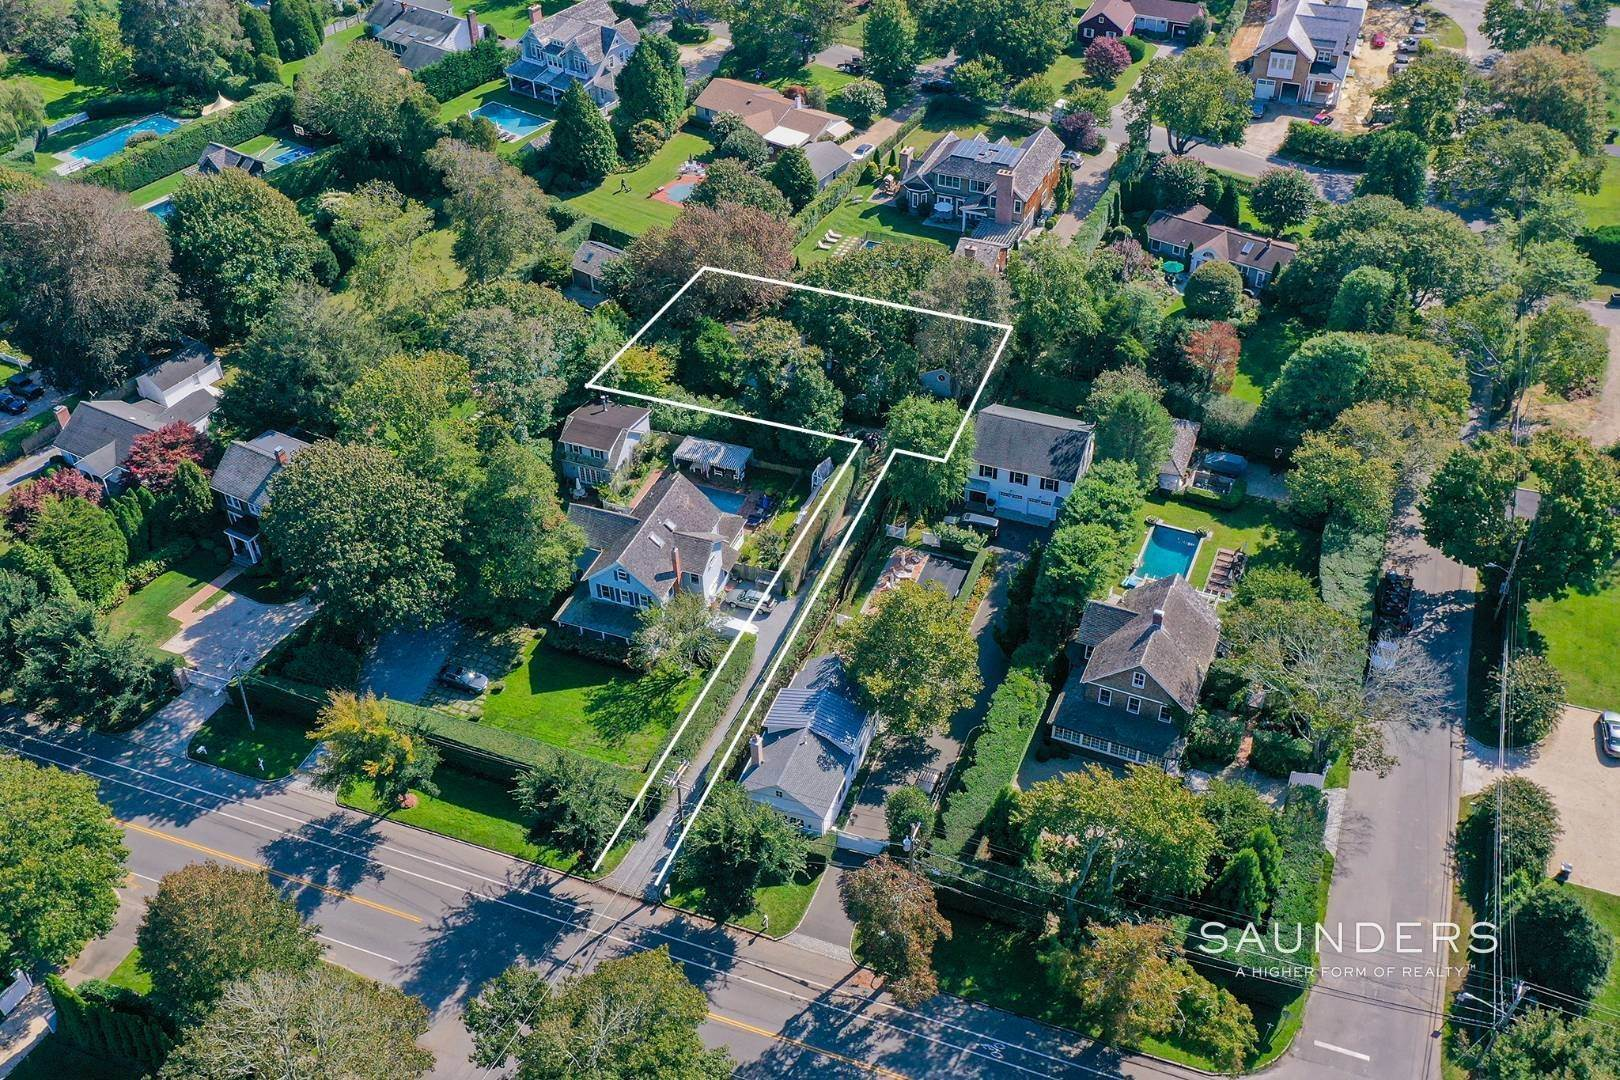 2. Single Family Homes for Sale at Southampton Village Renovate Or Build Opportunity 306 Hill Street, Southampton, Southampton Town, NY 11968